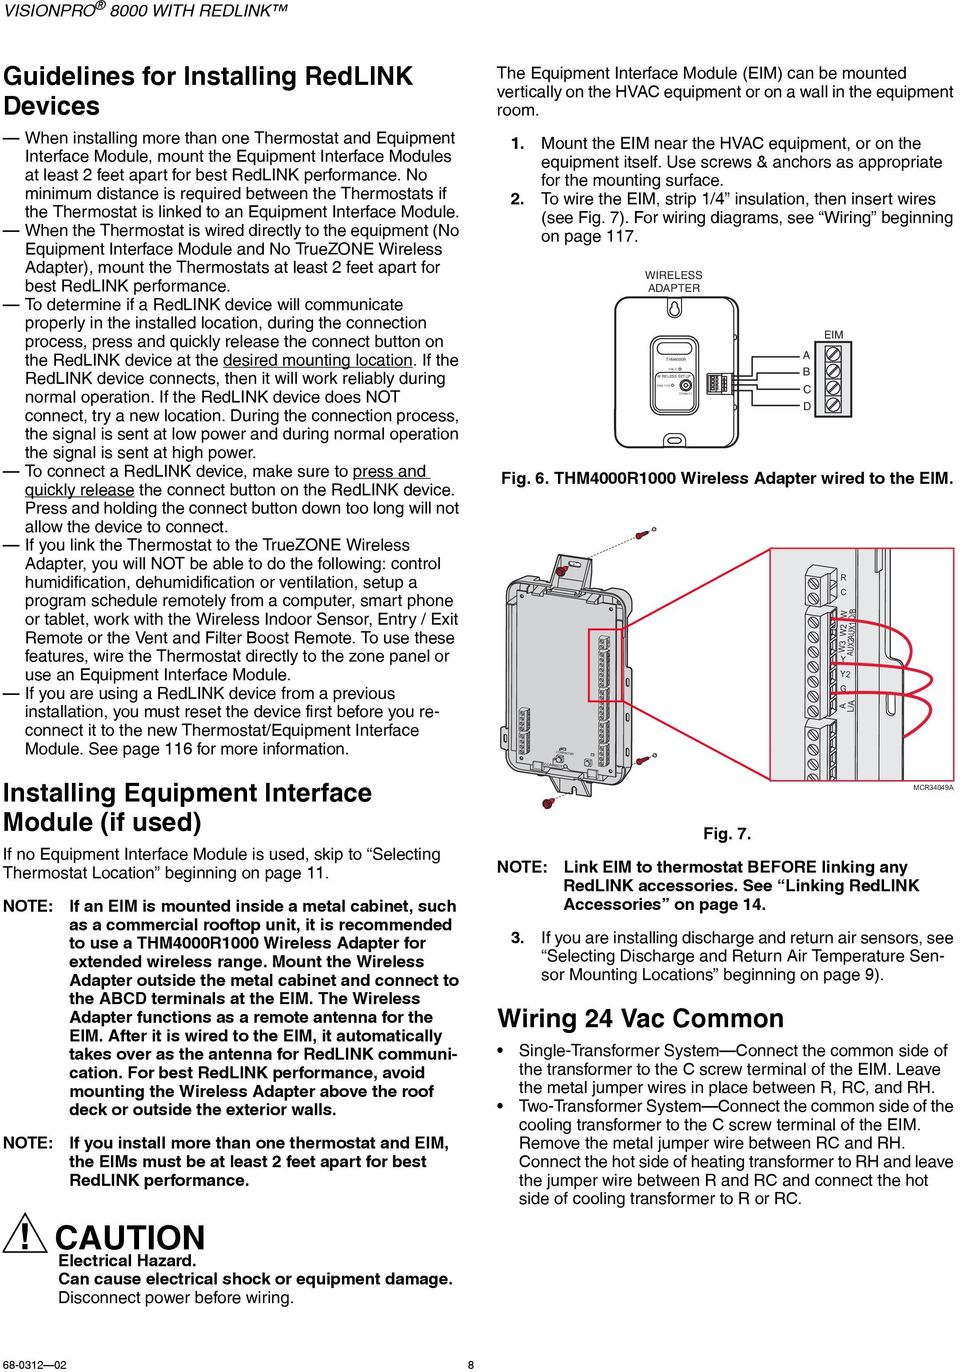 Visionpro 8000 With Redlink Pdf White Rodgers Fan Center Relay Wiring Diagram When The Thermostat Is Wired Directly To Equipment No Interface Module And